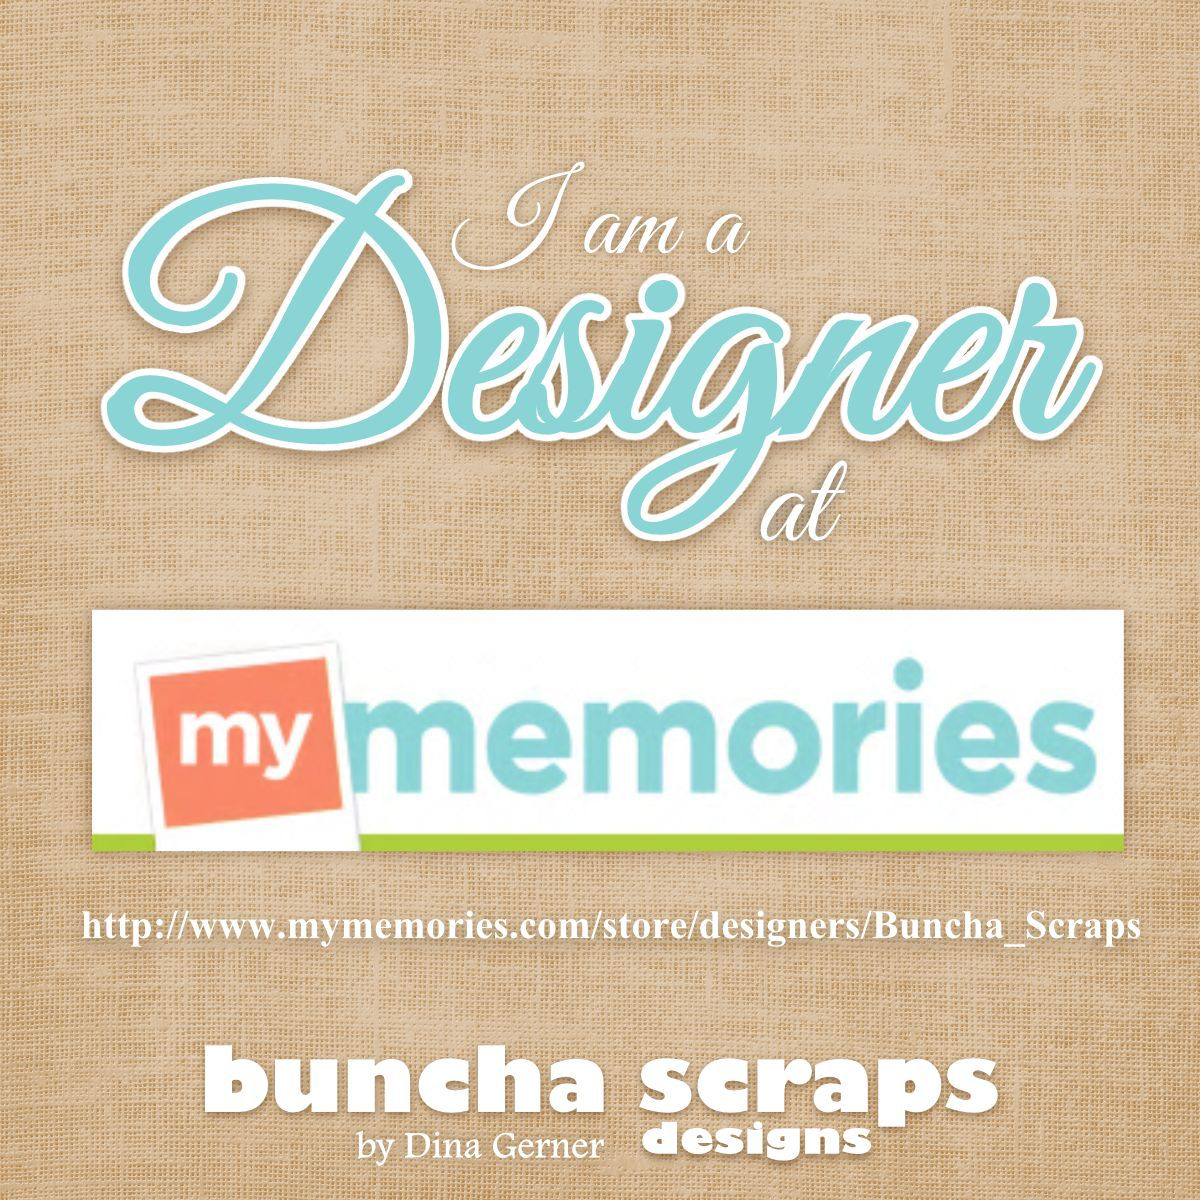 Designer at MyMemories